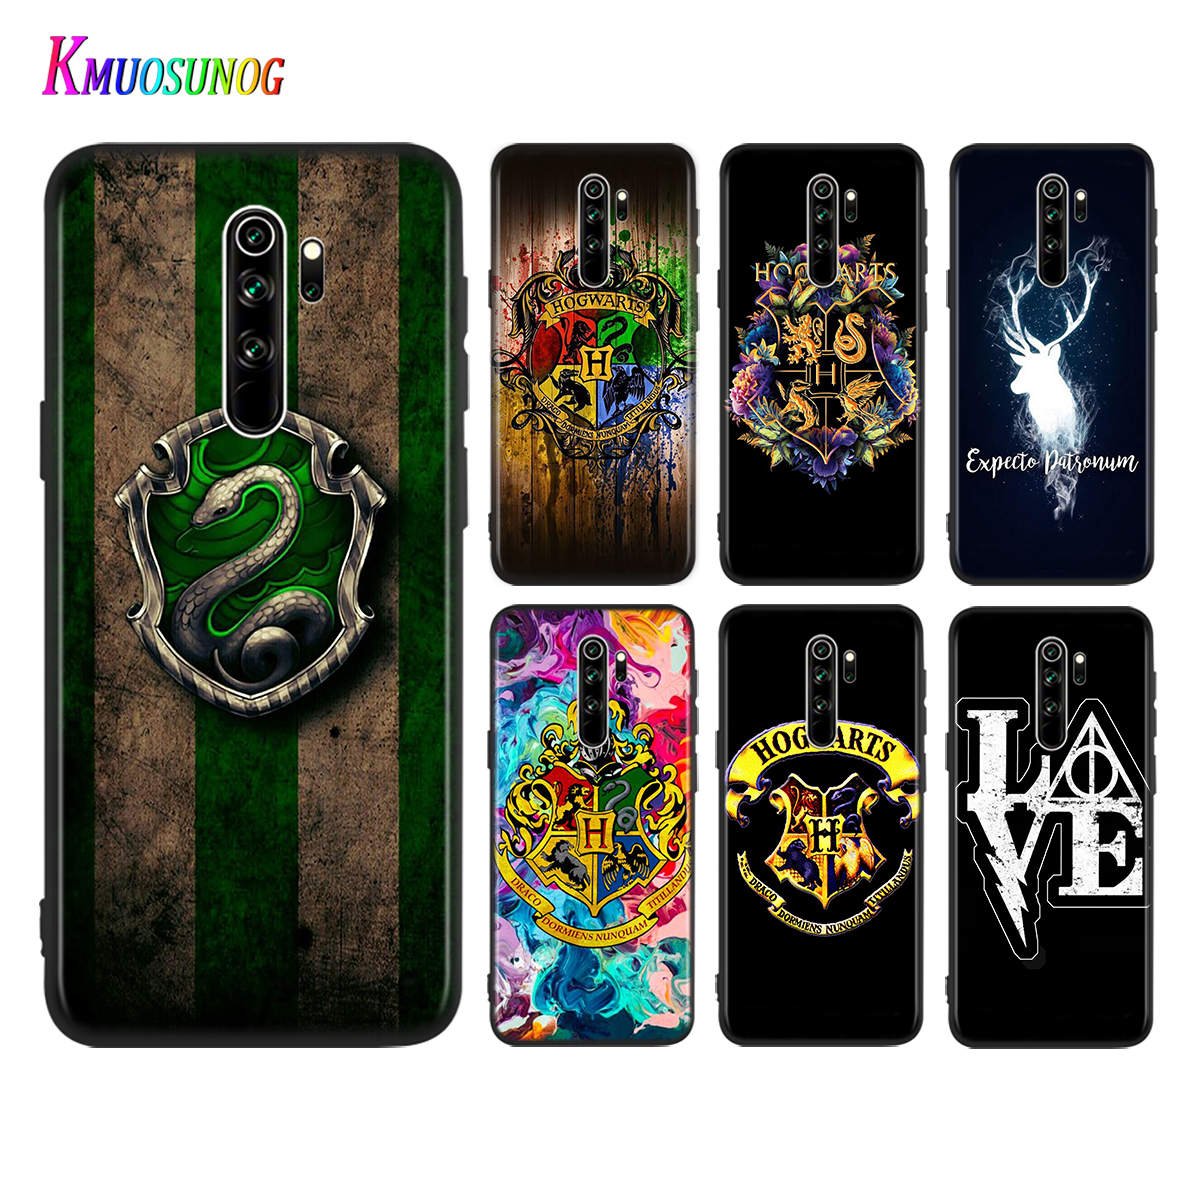 For Redmi 10X 5G S2 6A 6 5 Pro Plus Cover Cute Potter Love for Xiaomi Redmi 9 9A 9C 8 8A 7 7A K20 Pro Phone Case image